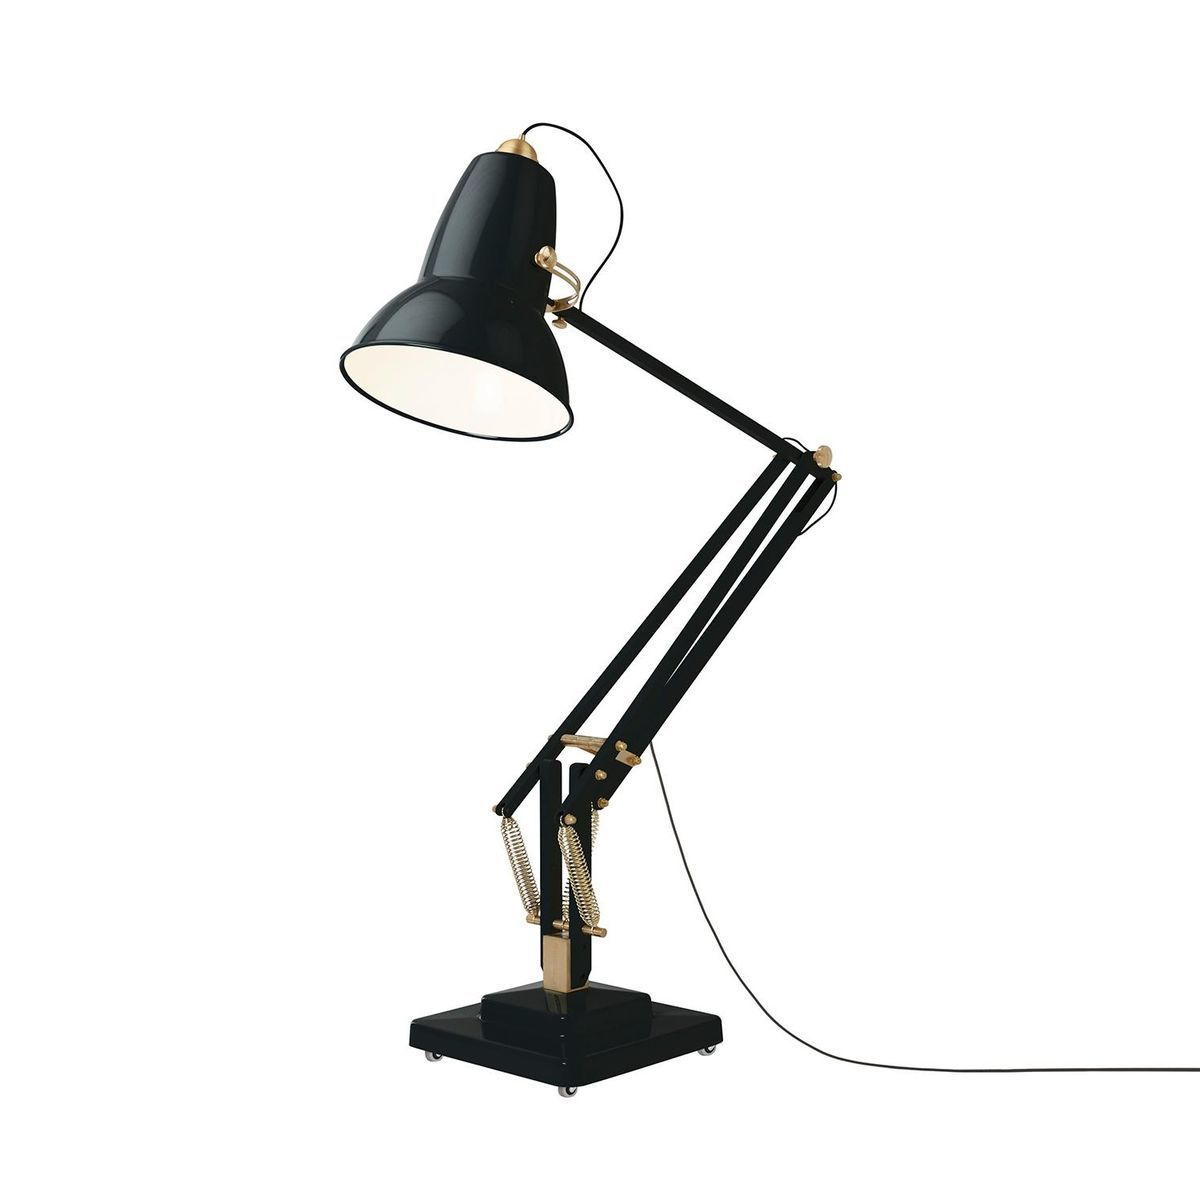 Original 1227 giant brass led floor lamp anglepoise - Giant anglepoise lamp ...